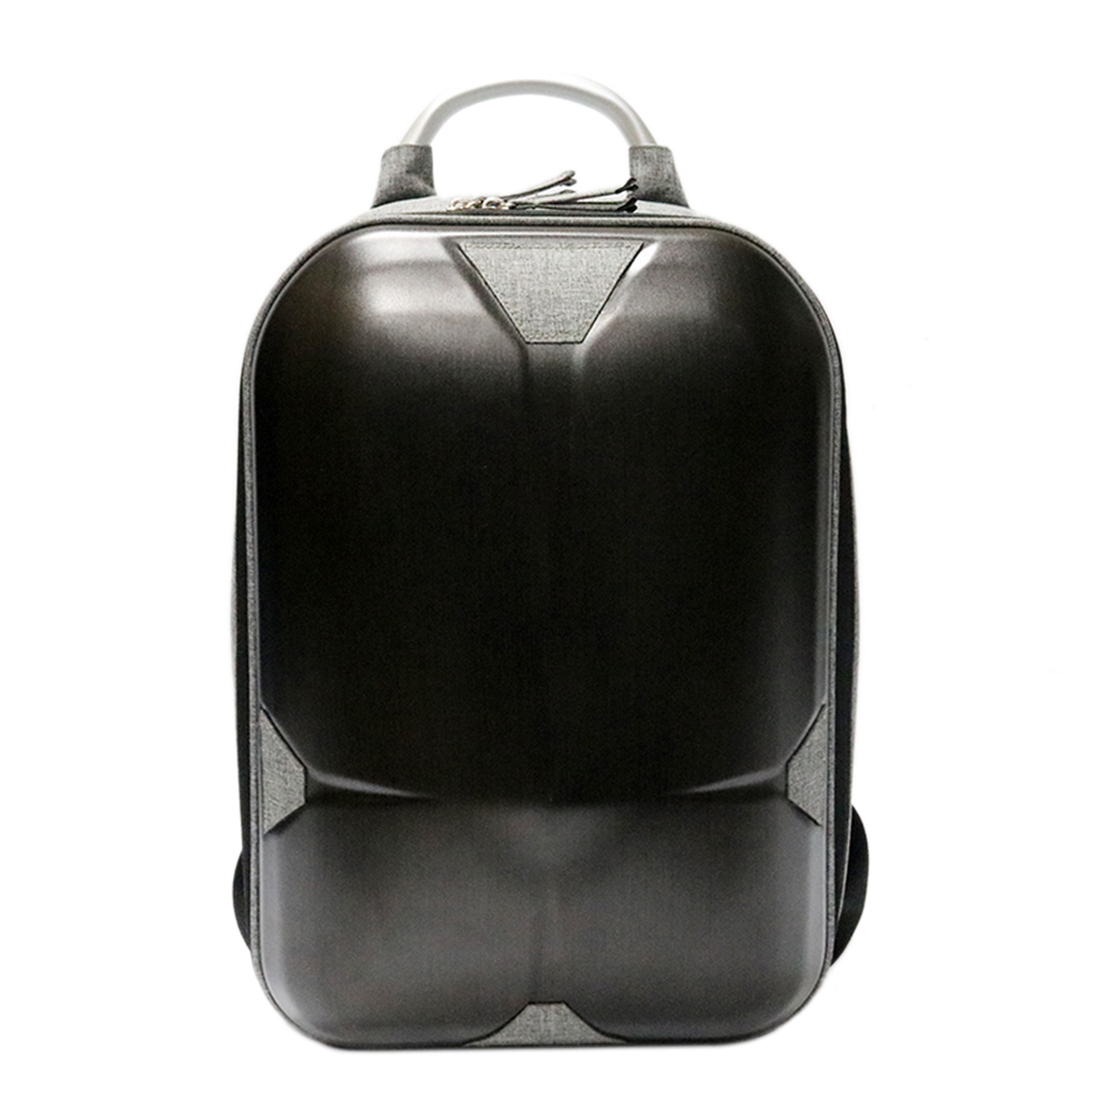 HOBBYINRC RC font b Drone b font Profissional Accessories Waterproof Hardshell Backpack Shoulder Bag Luggage Suitcase